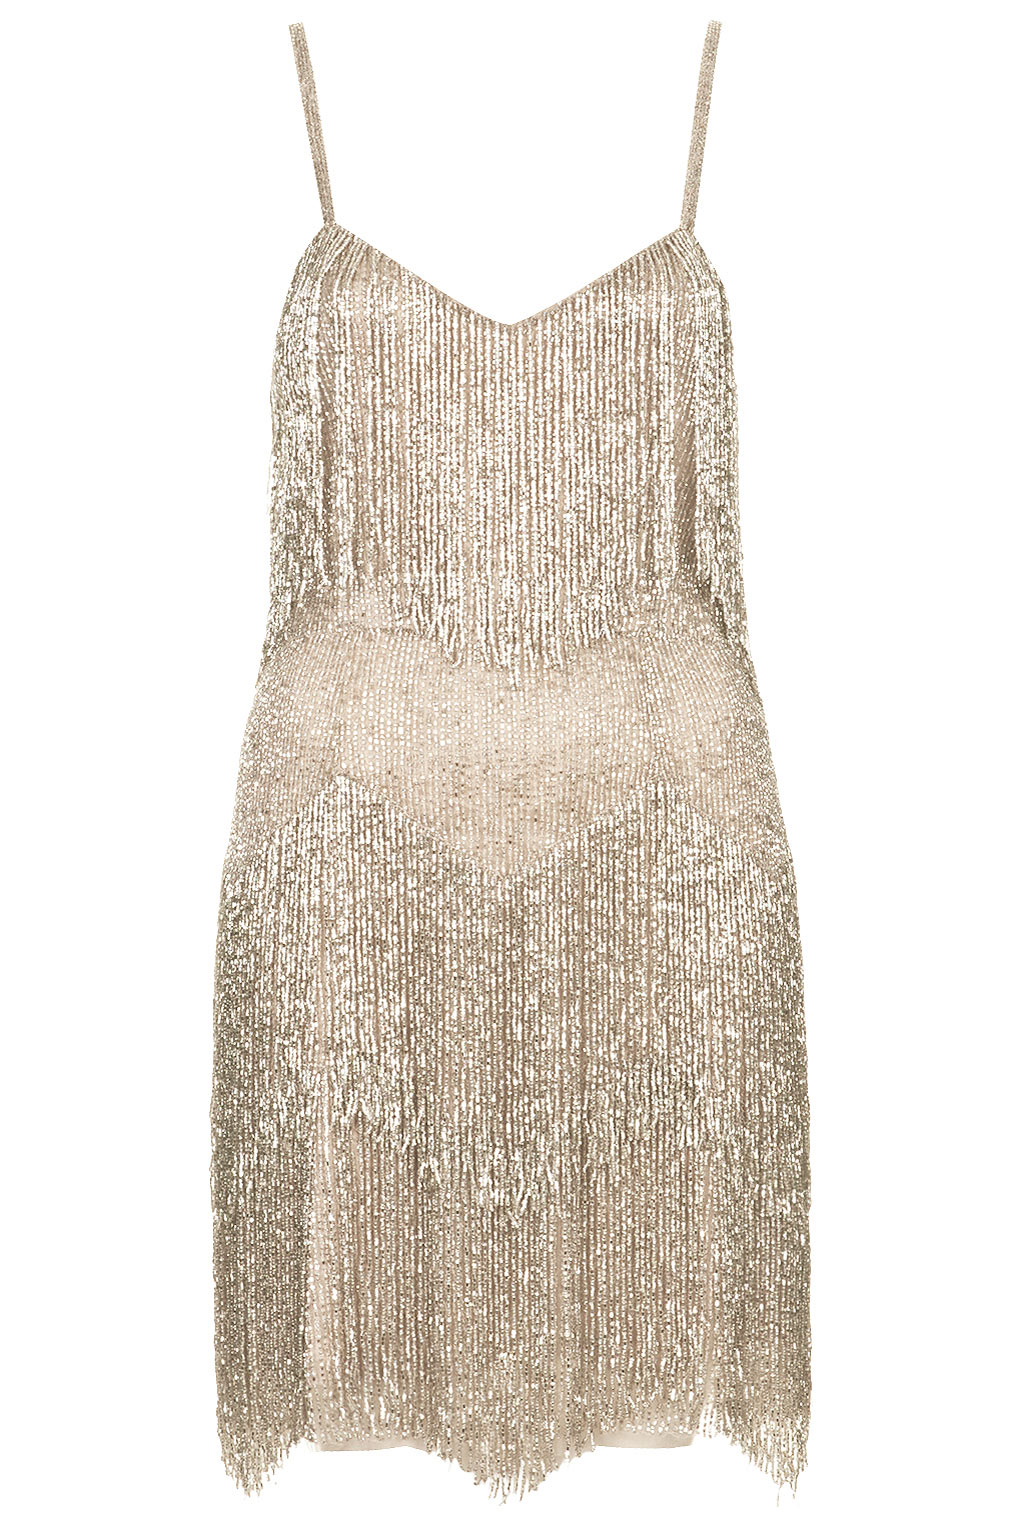 Beaded fringe tiered dress, £250, Kate Moss For Topshop. www.topshop.com